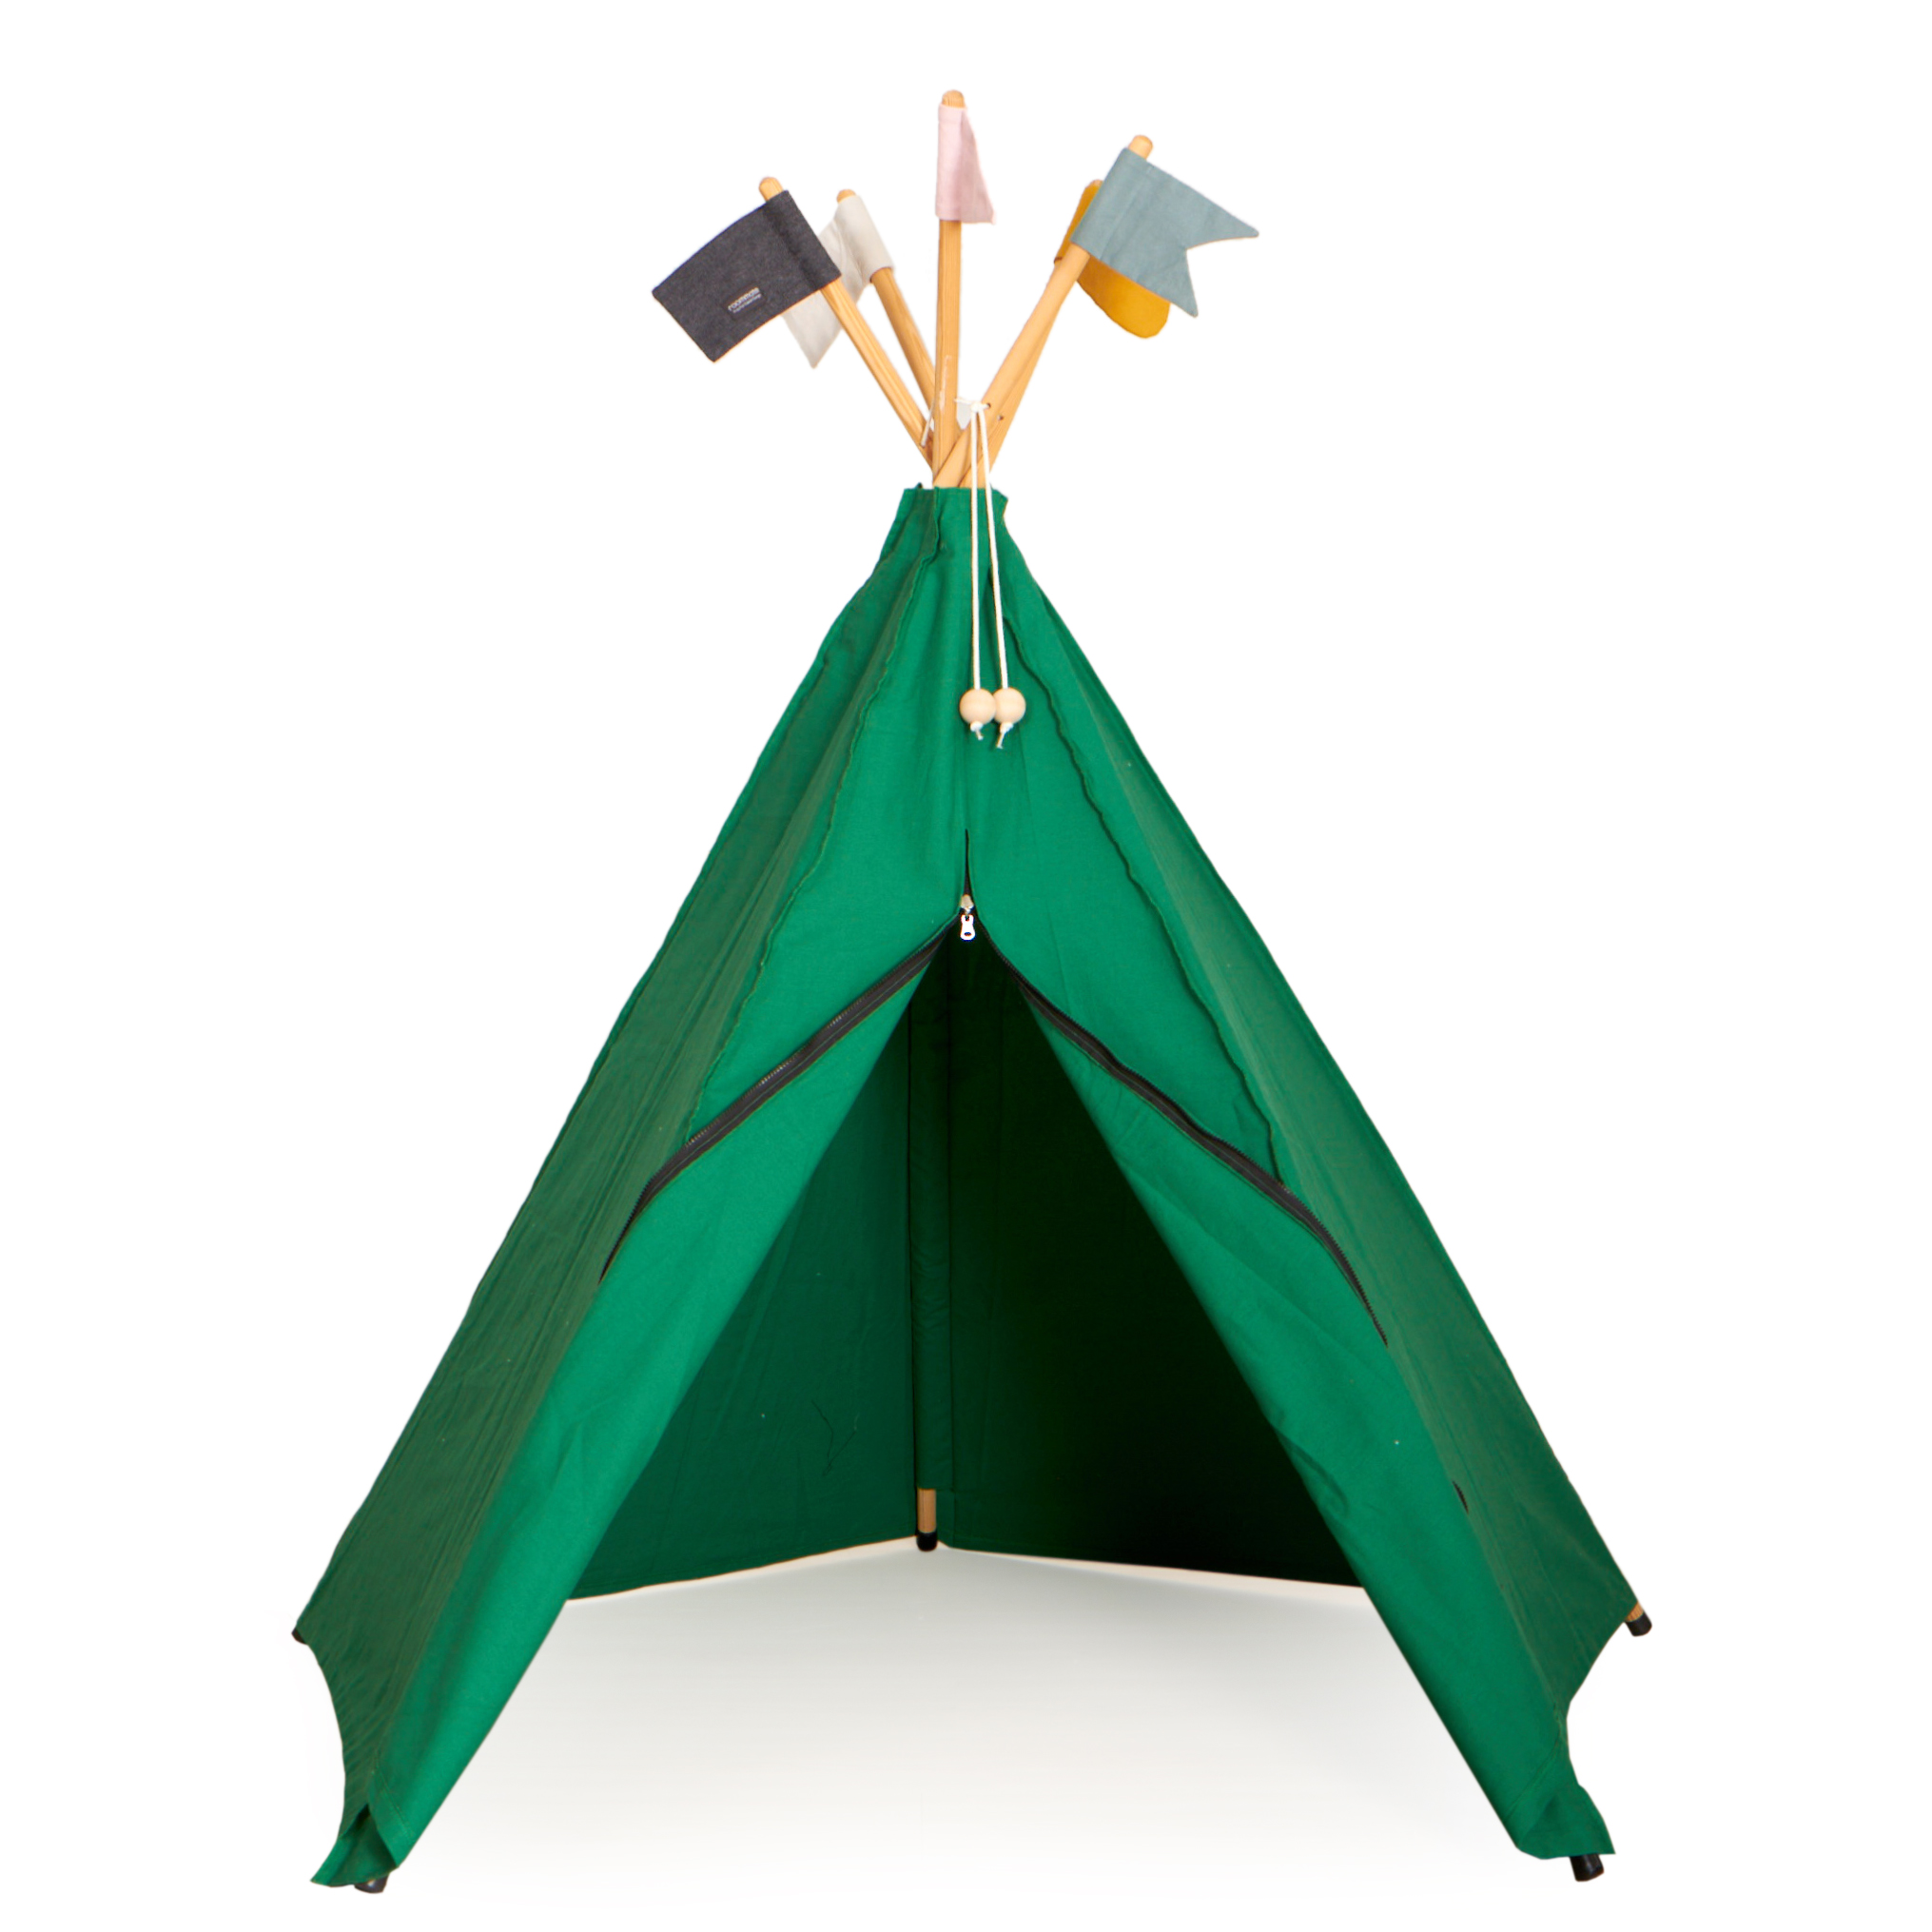 Roommate - Play Tent Hippie Tipi - Green (1003824)